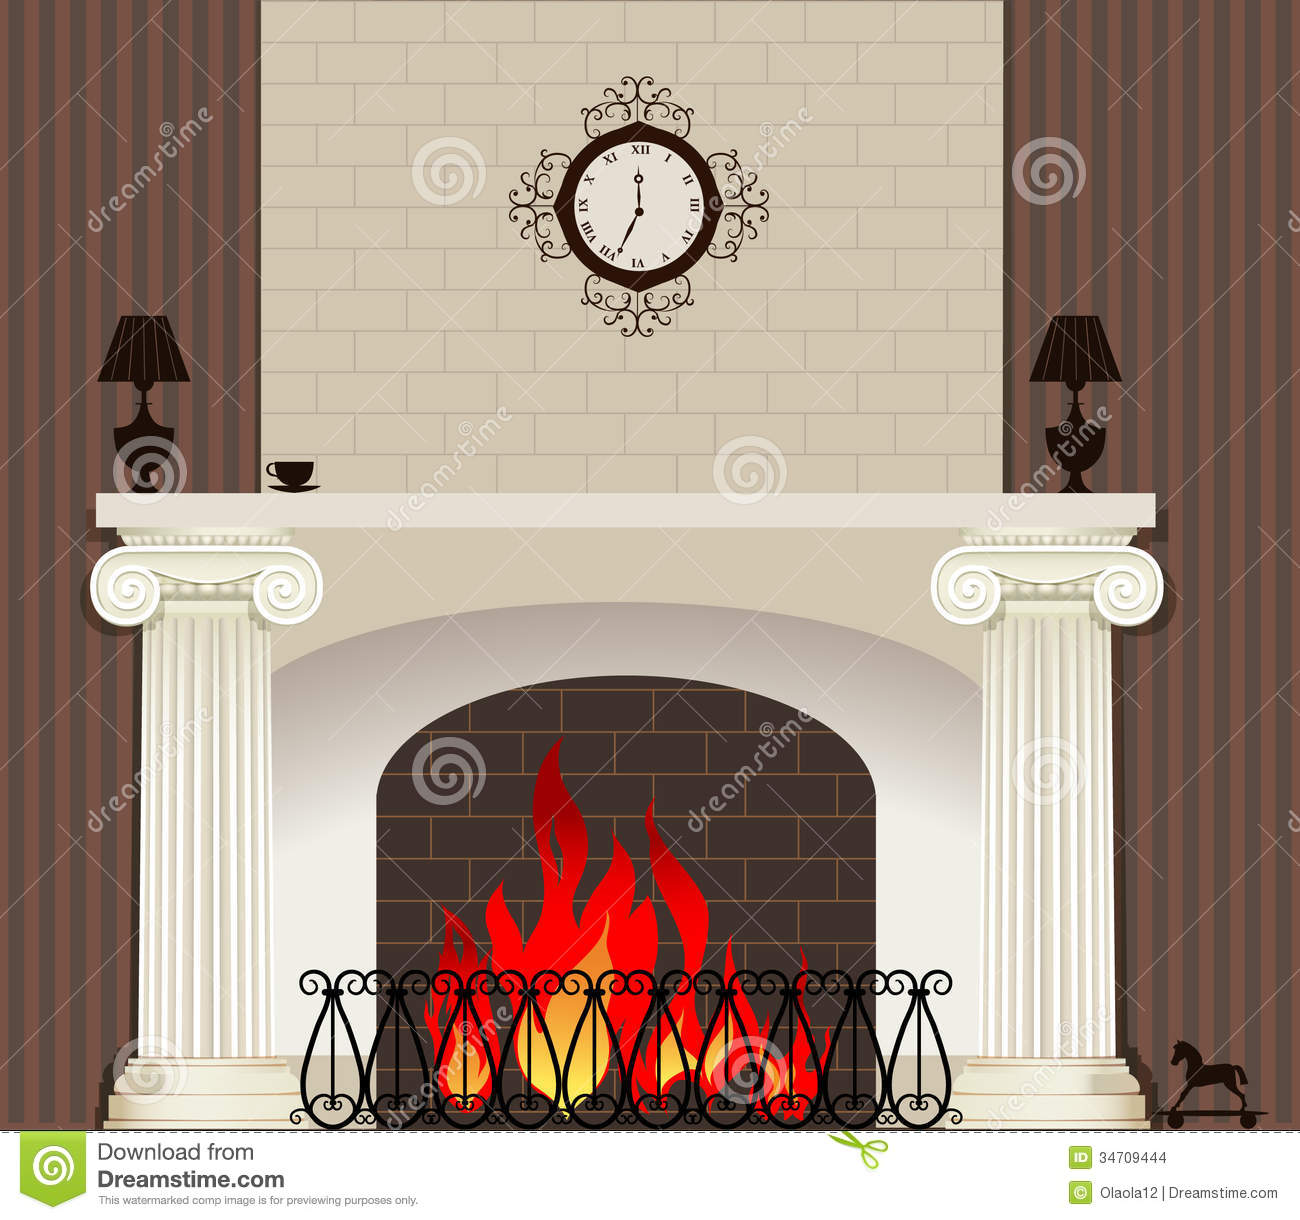 Fire in fireplace stock vector. Image of abstract ...